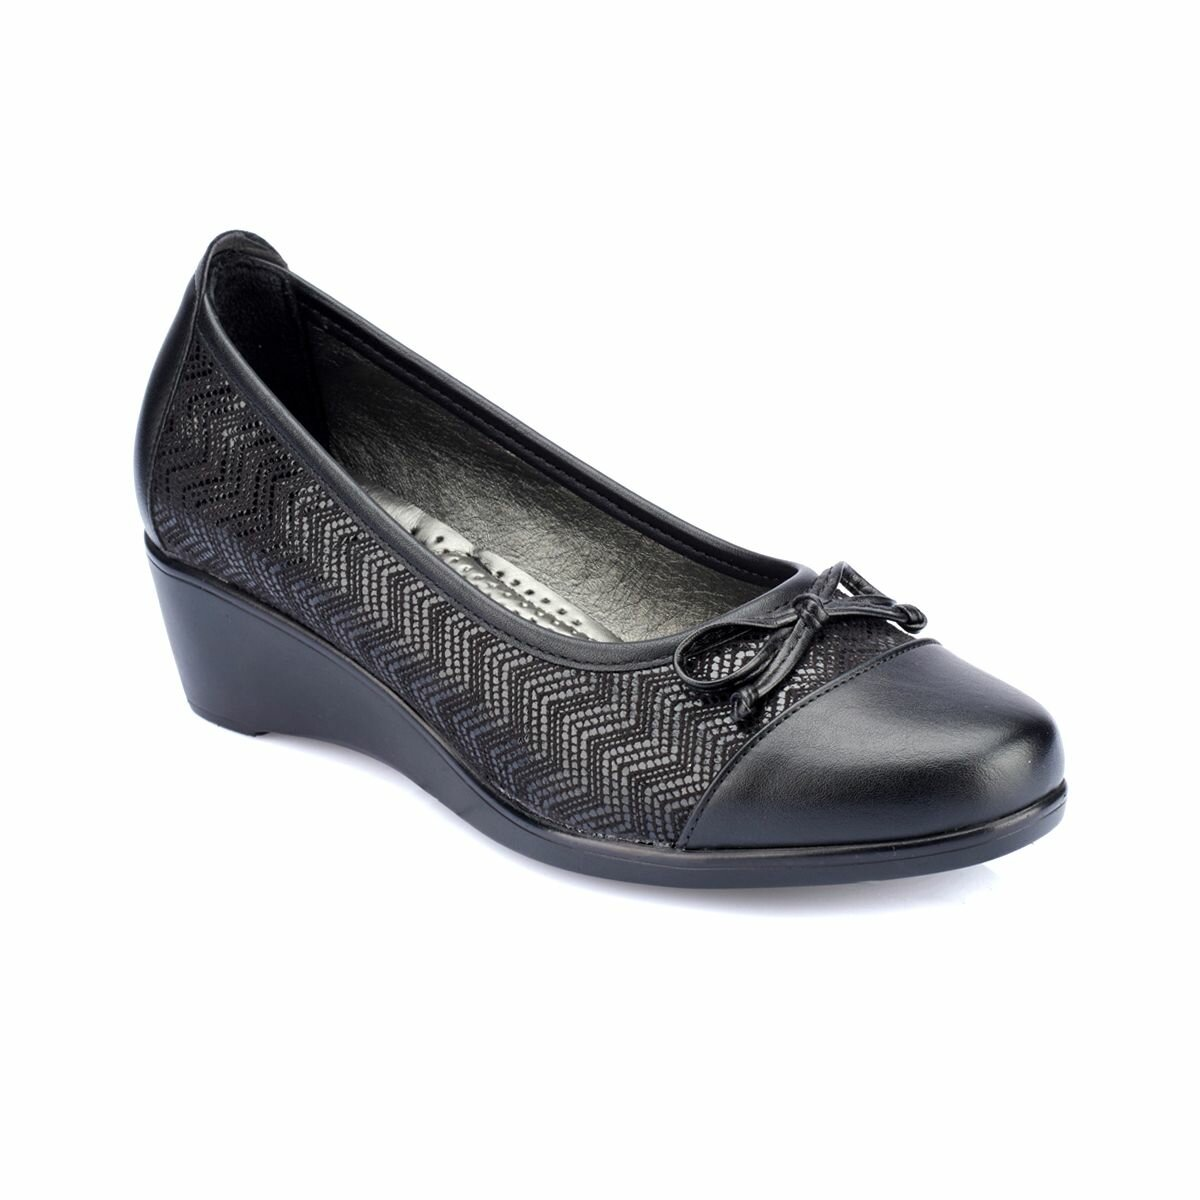 FLO 82.150012GZ Black Women Shoes Polaris